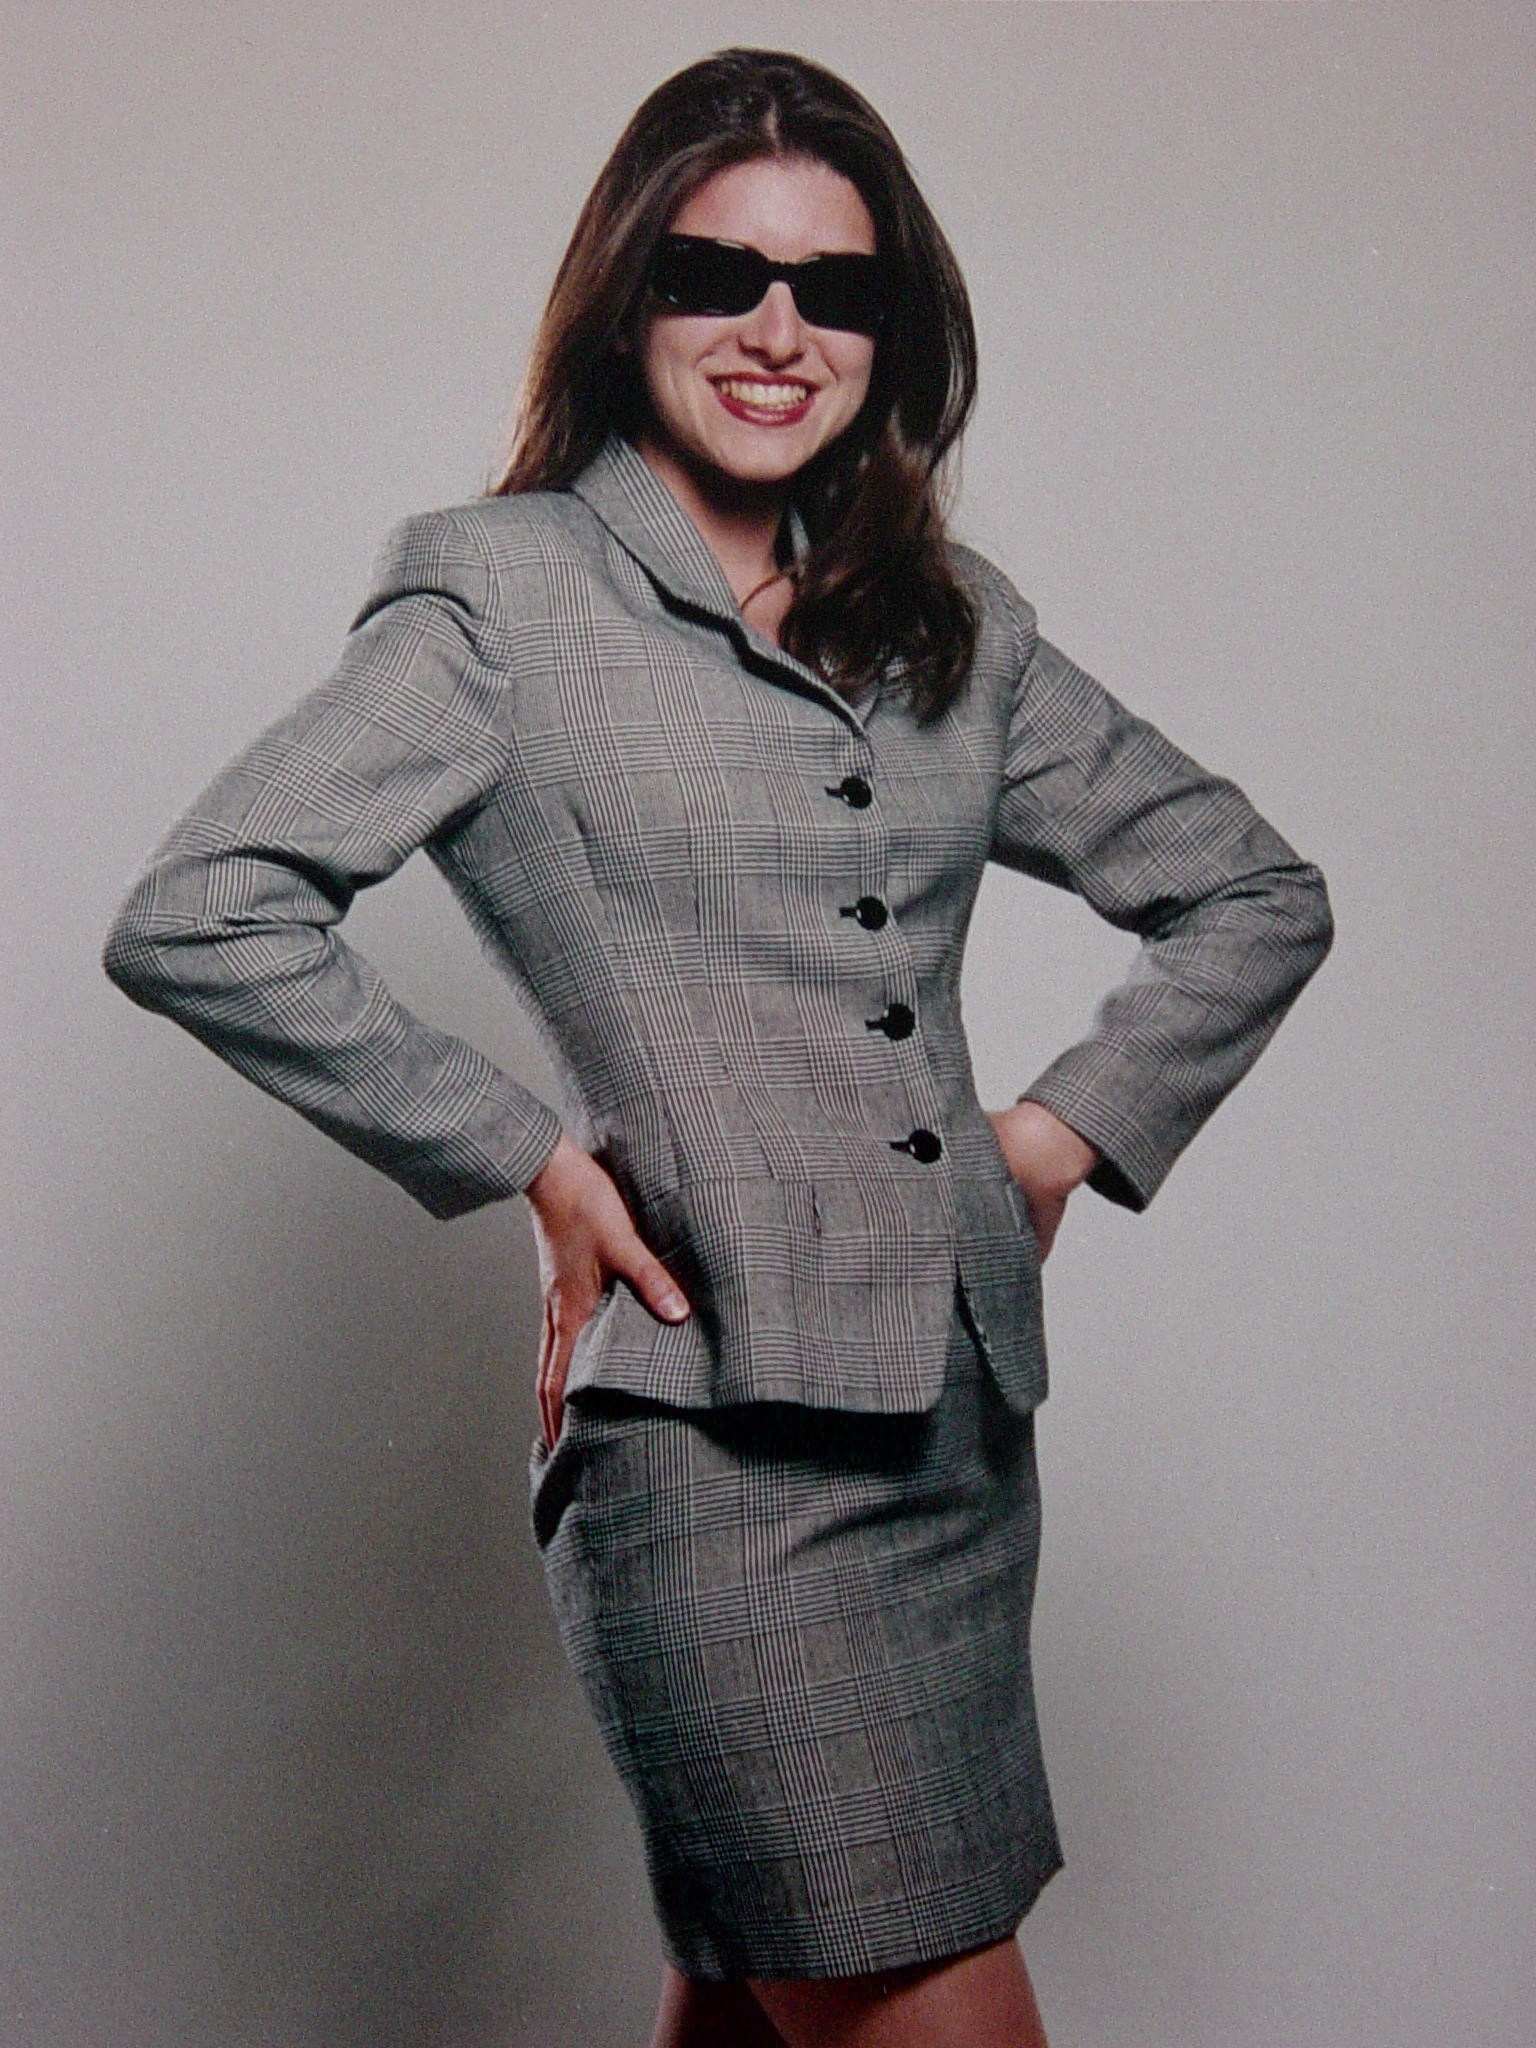 Photo of Catherine taormina suit sunglasses